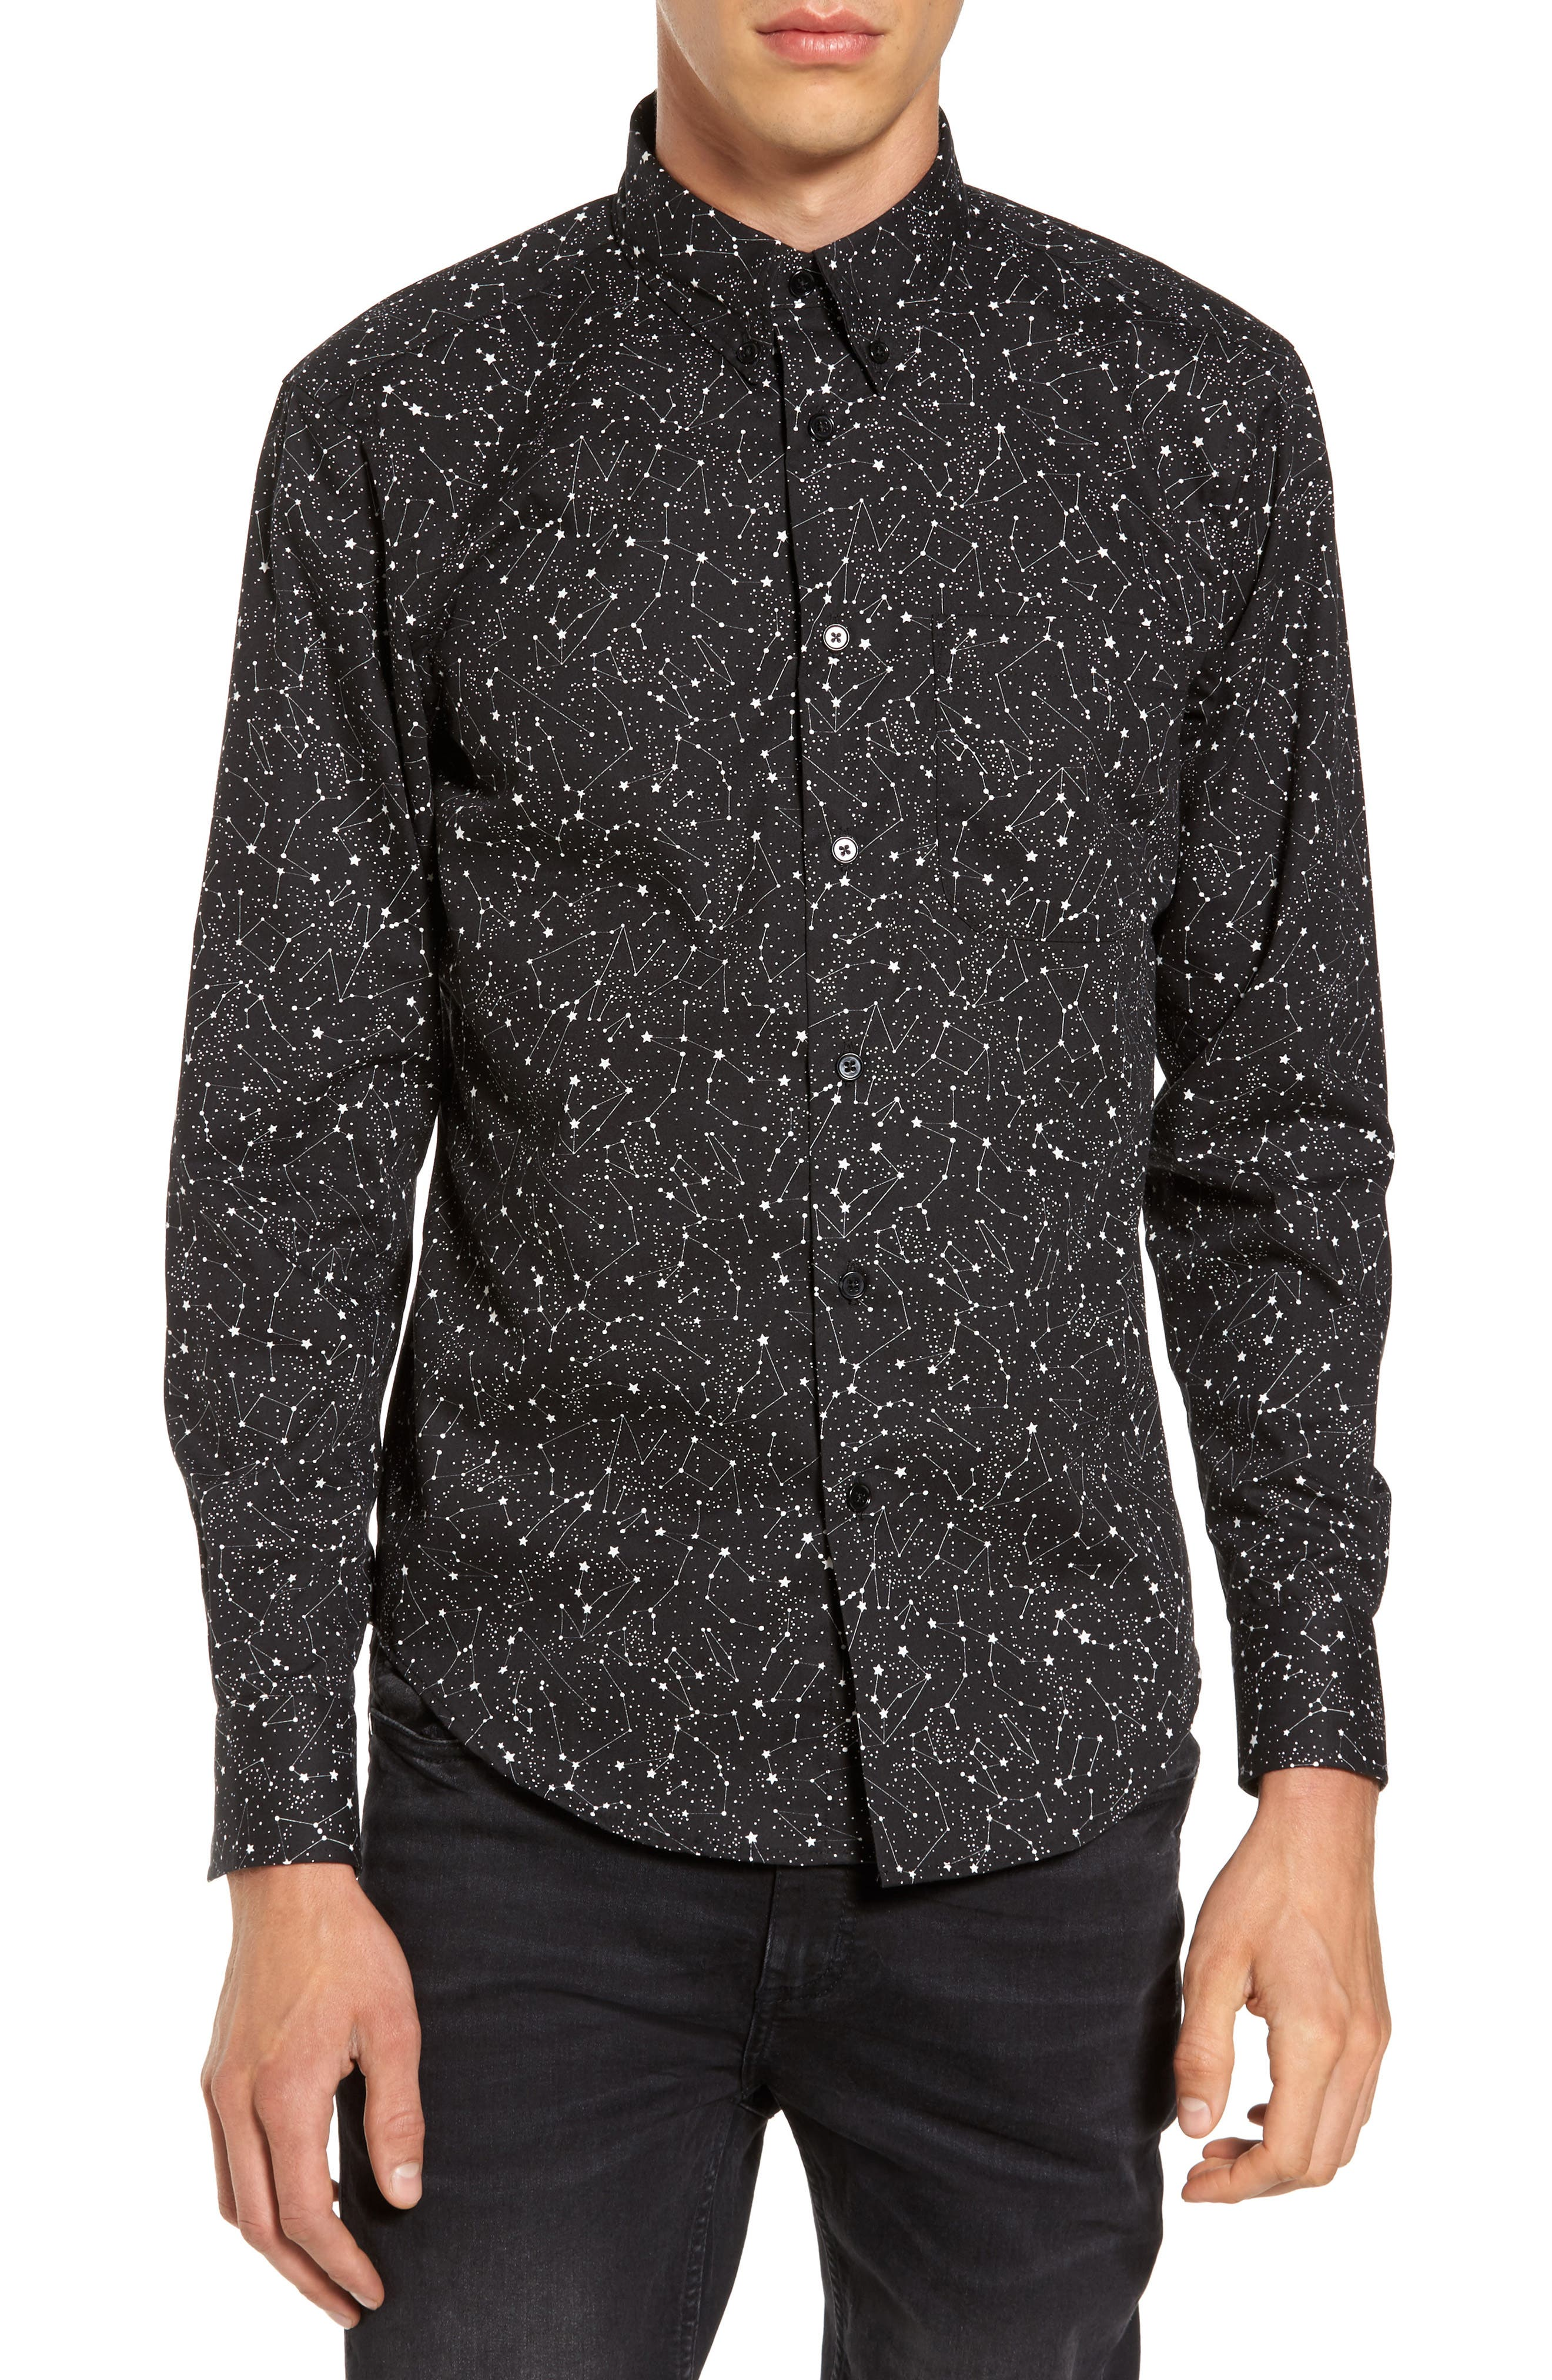 Constellations Shirt,                         Main,                         color, 001